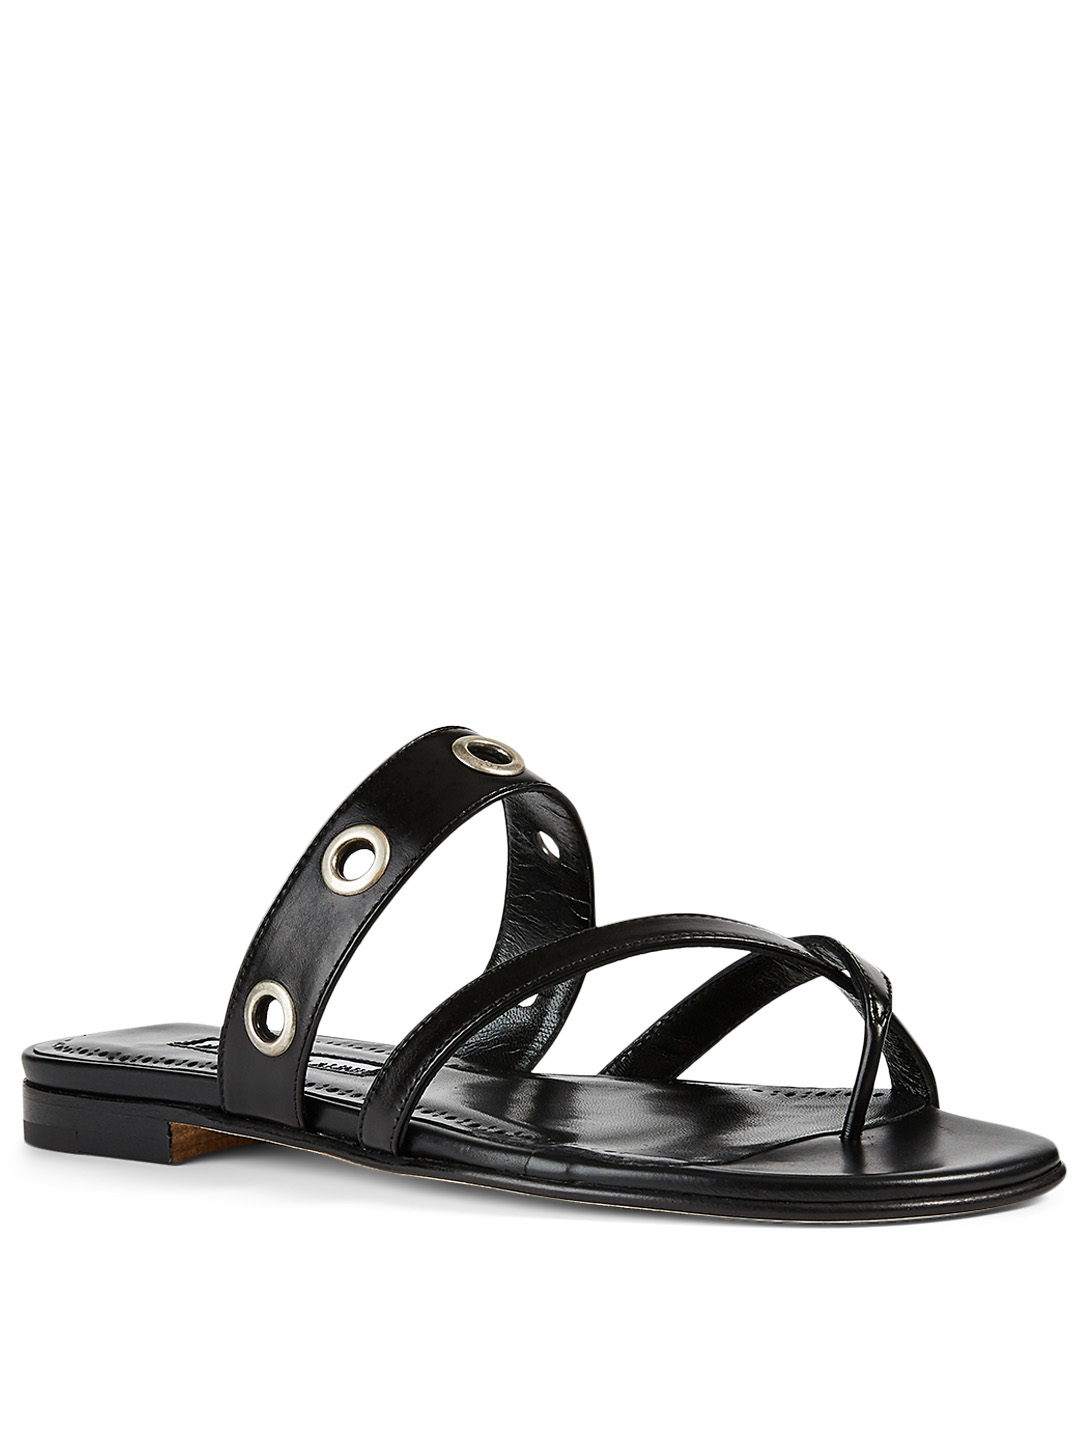 MANOLO BLAHNIK Susoch Leather Thong Sandals Women's Black